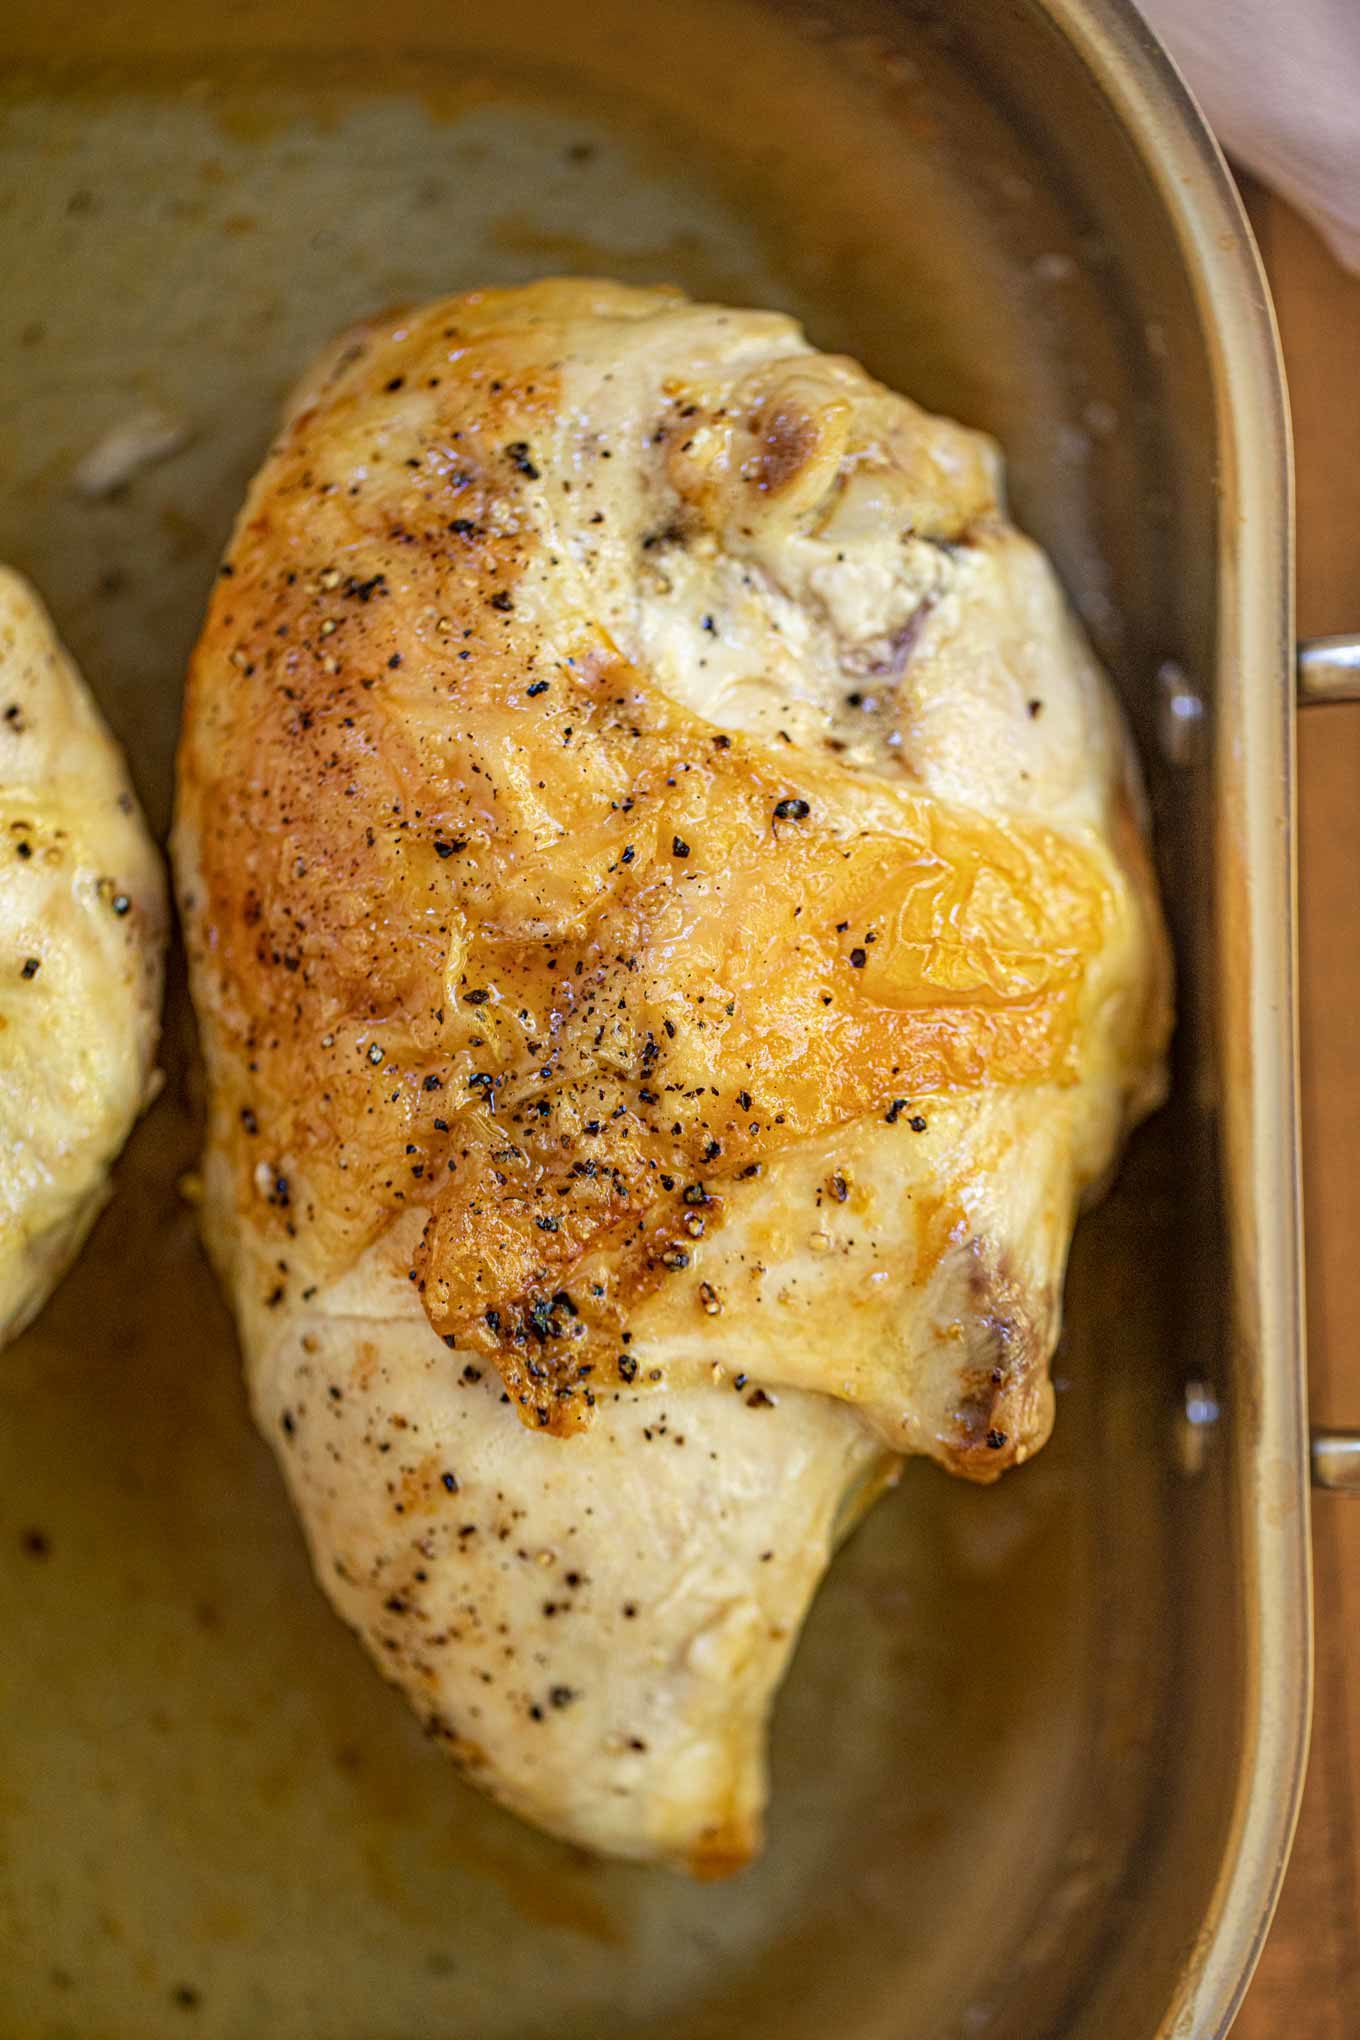 Chicken breast baked in oven